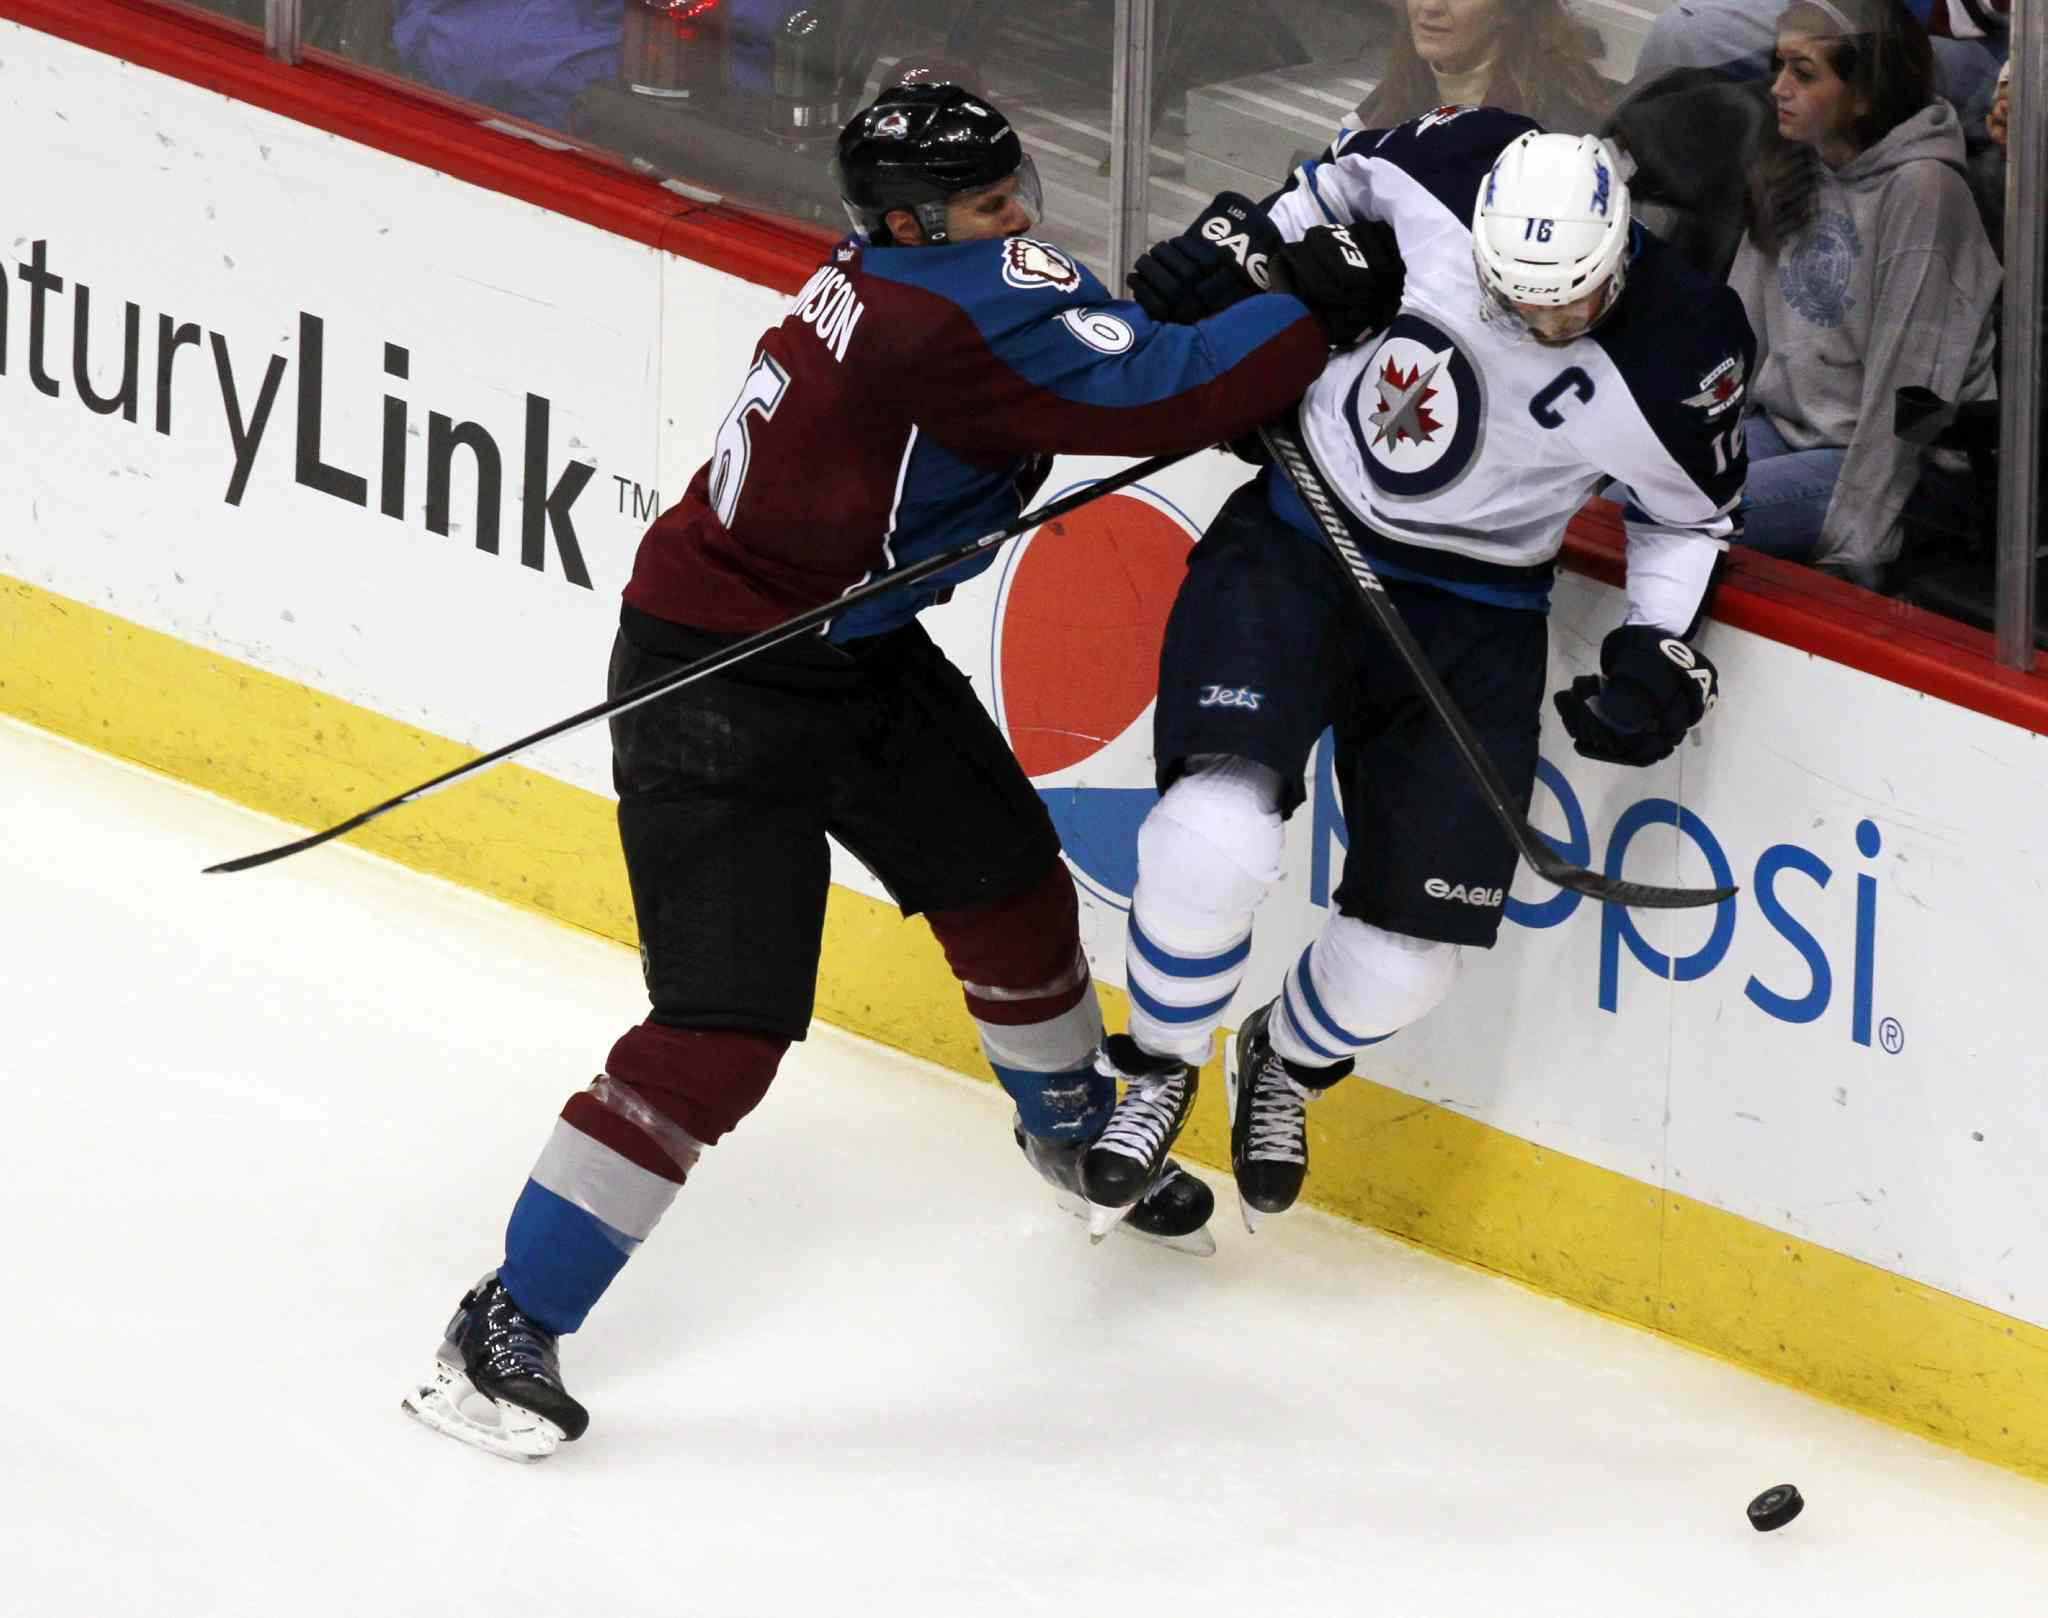 Colorado Avalanche defenseman Erik Johnson (left) sends Jets captain Andrew Ladd into the boards in the third period.